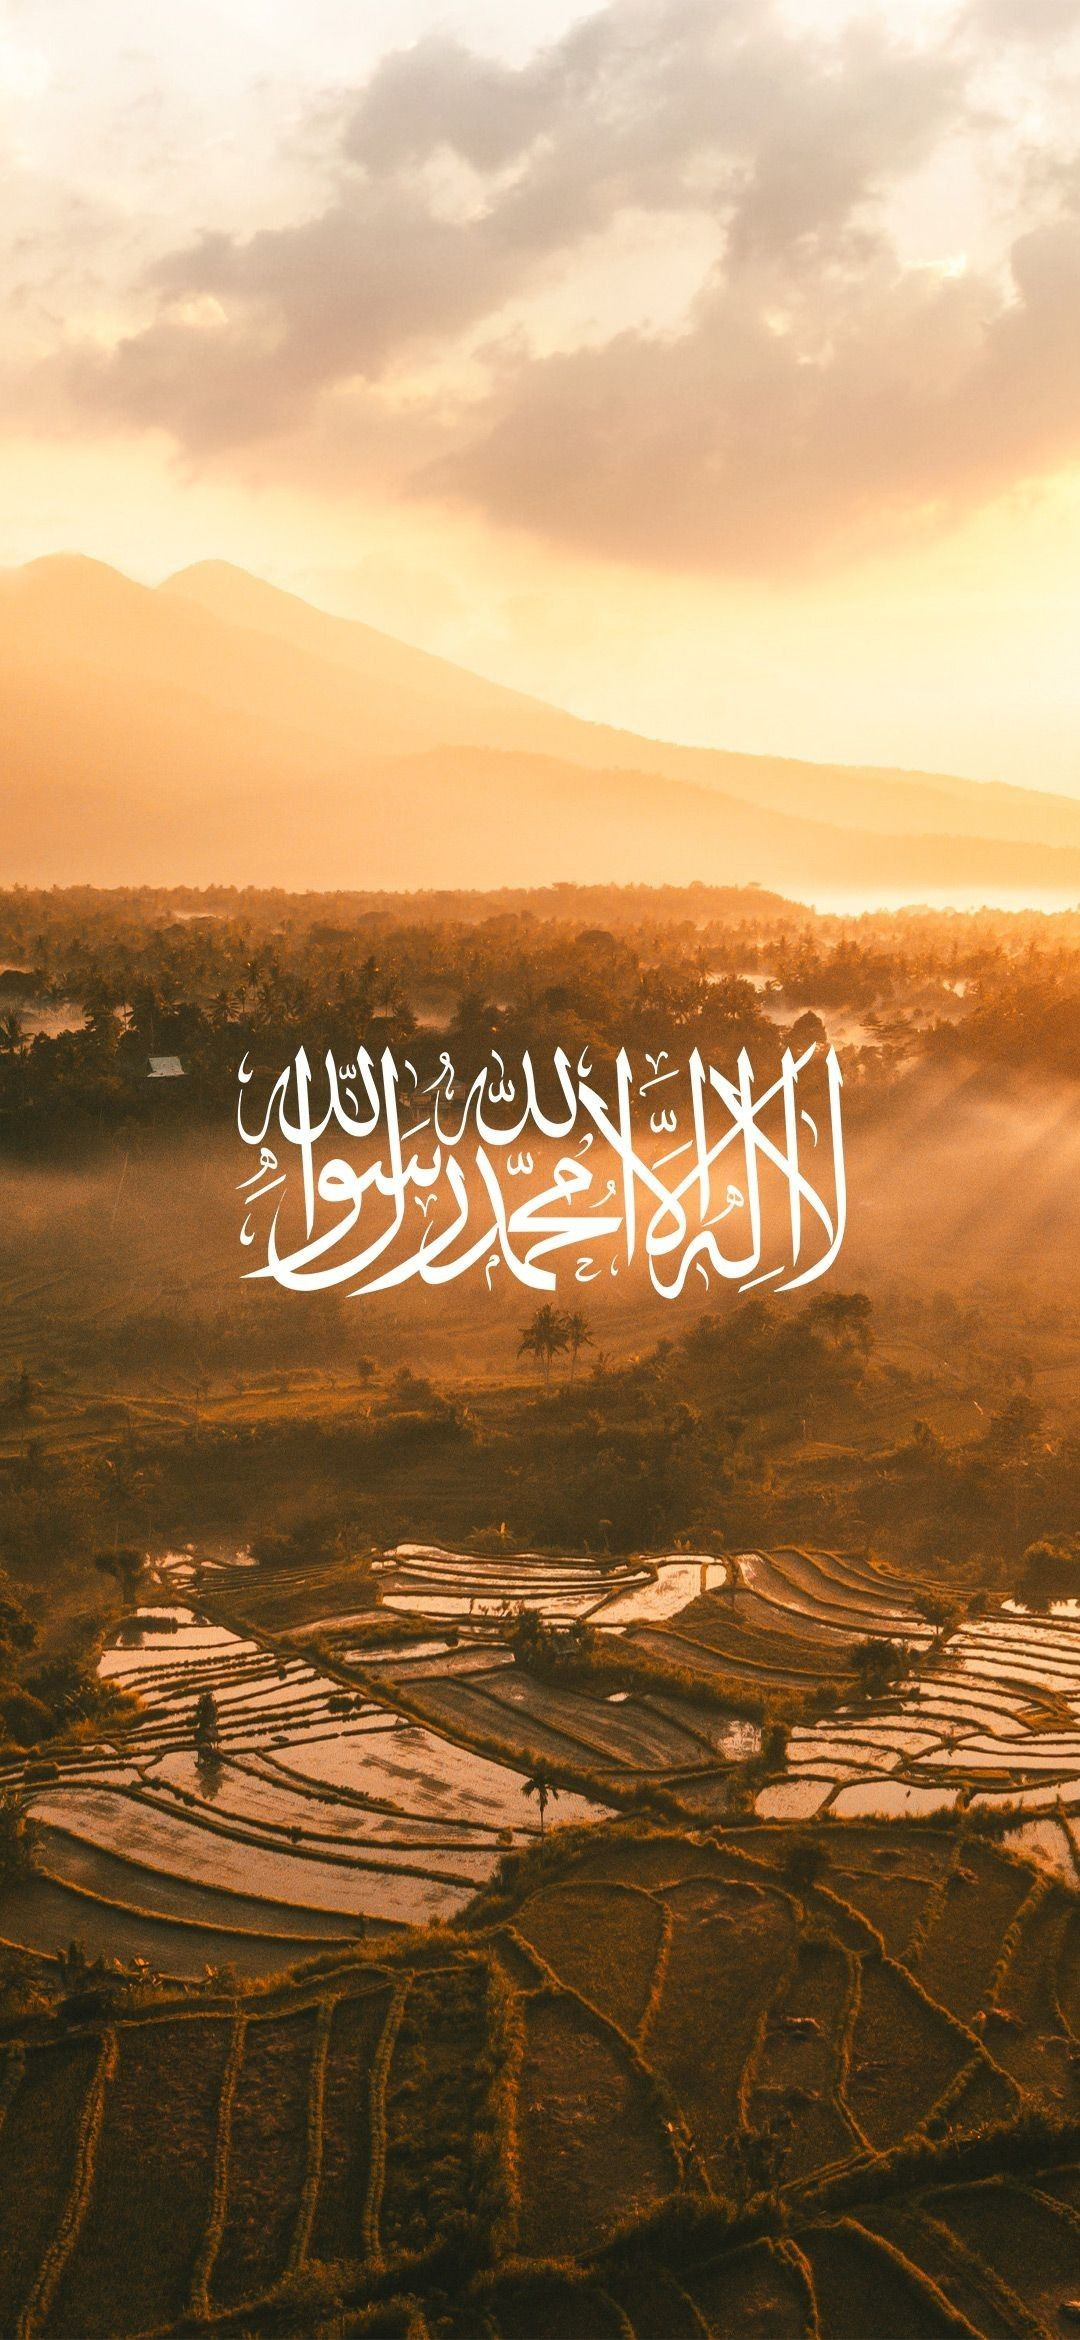 Pin By Pŗincess Soly On Islamic Quotes In 2020 Quran Wallpaper Islamic Wallpaper Iphone Islamic Wallpaper